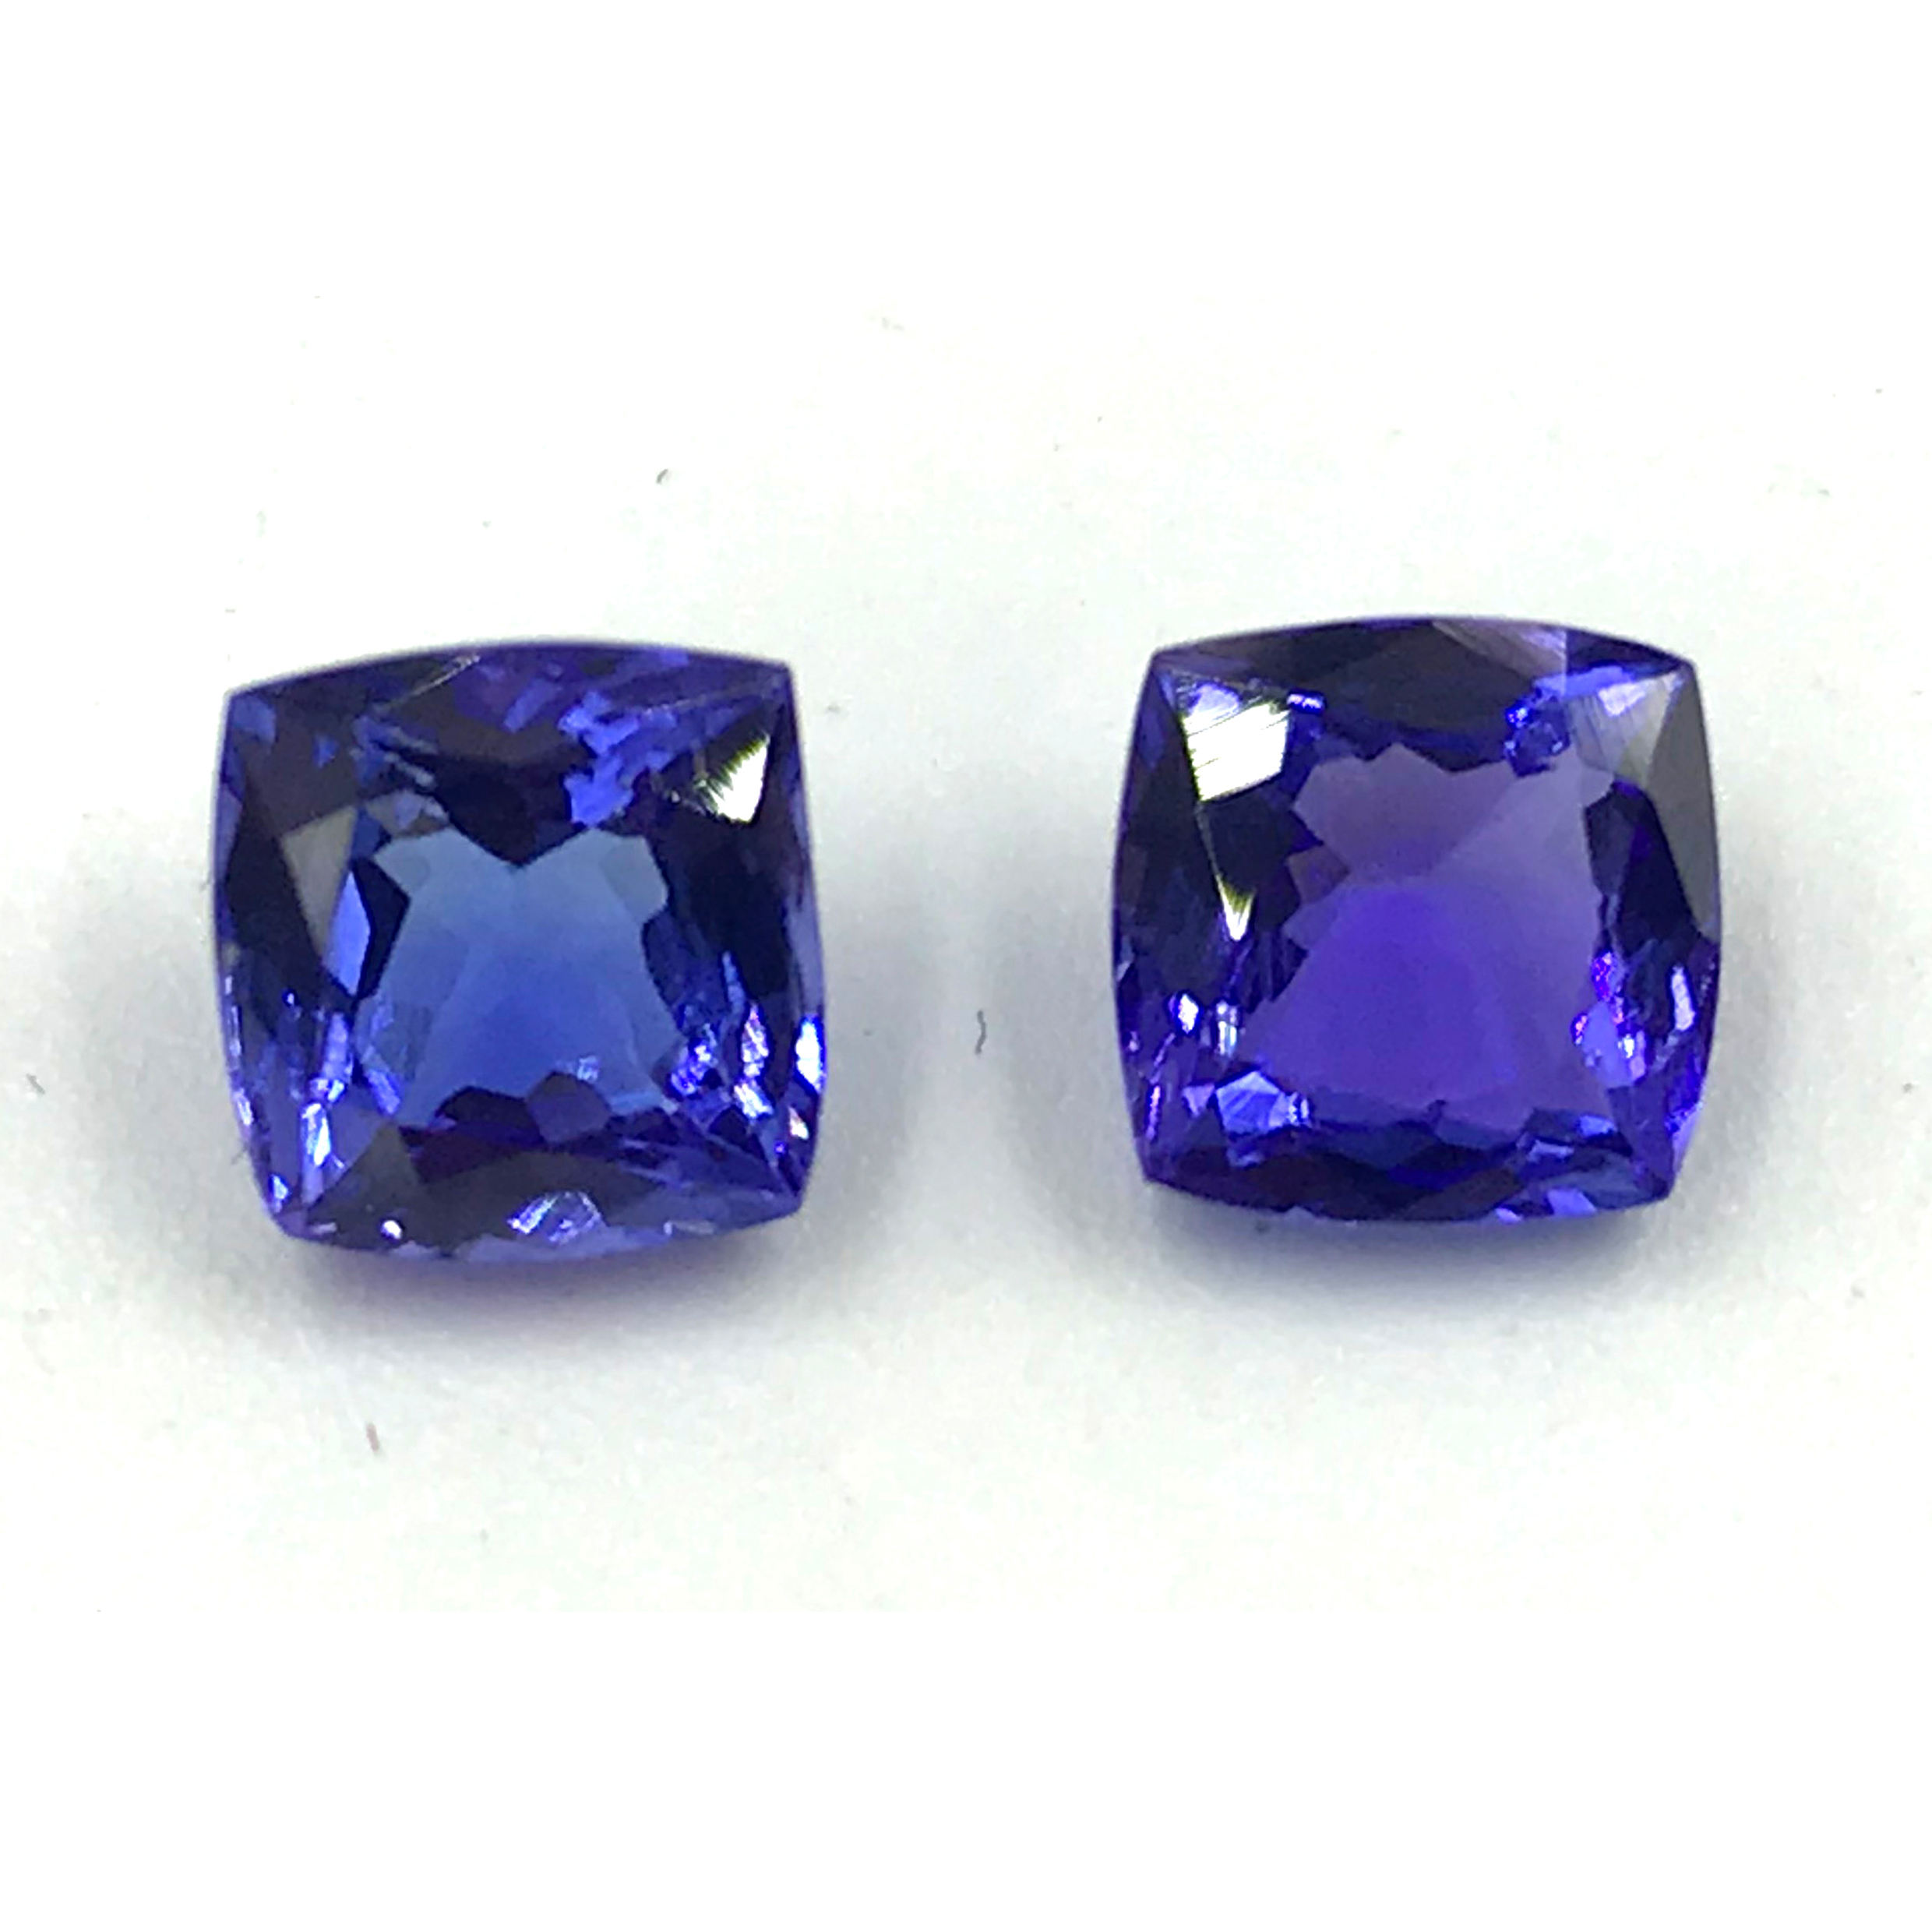 Top Certified International Supplier Of Unheated & Untreated All Natural Stone Tanzanite Cushion Faceted Gemstone Pair On Sale